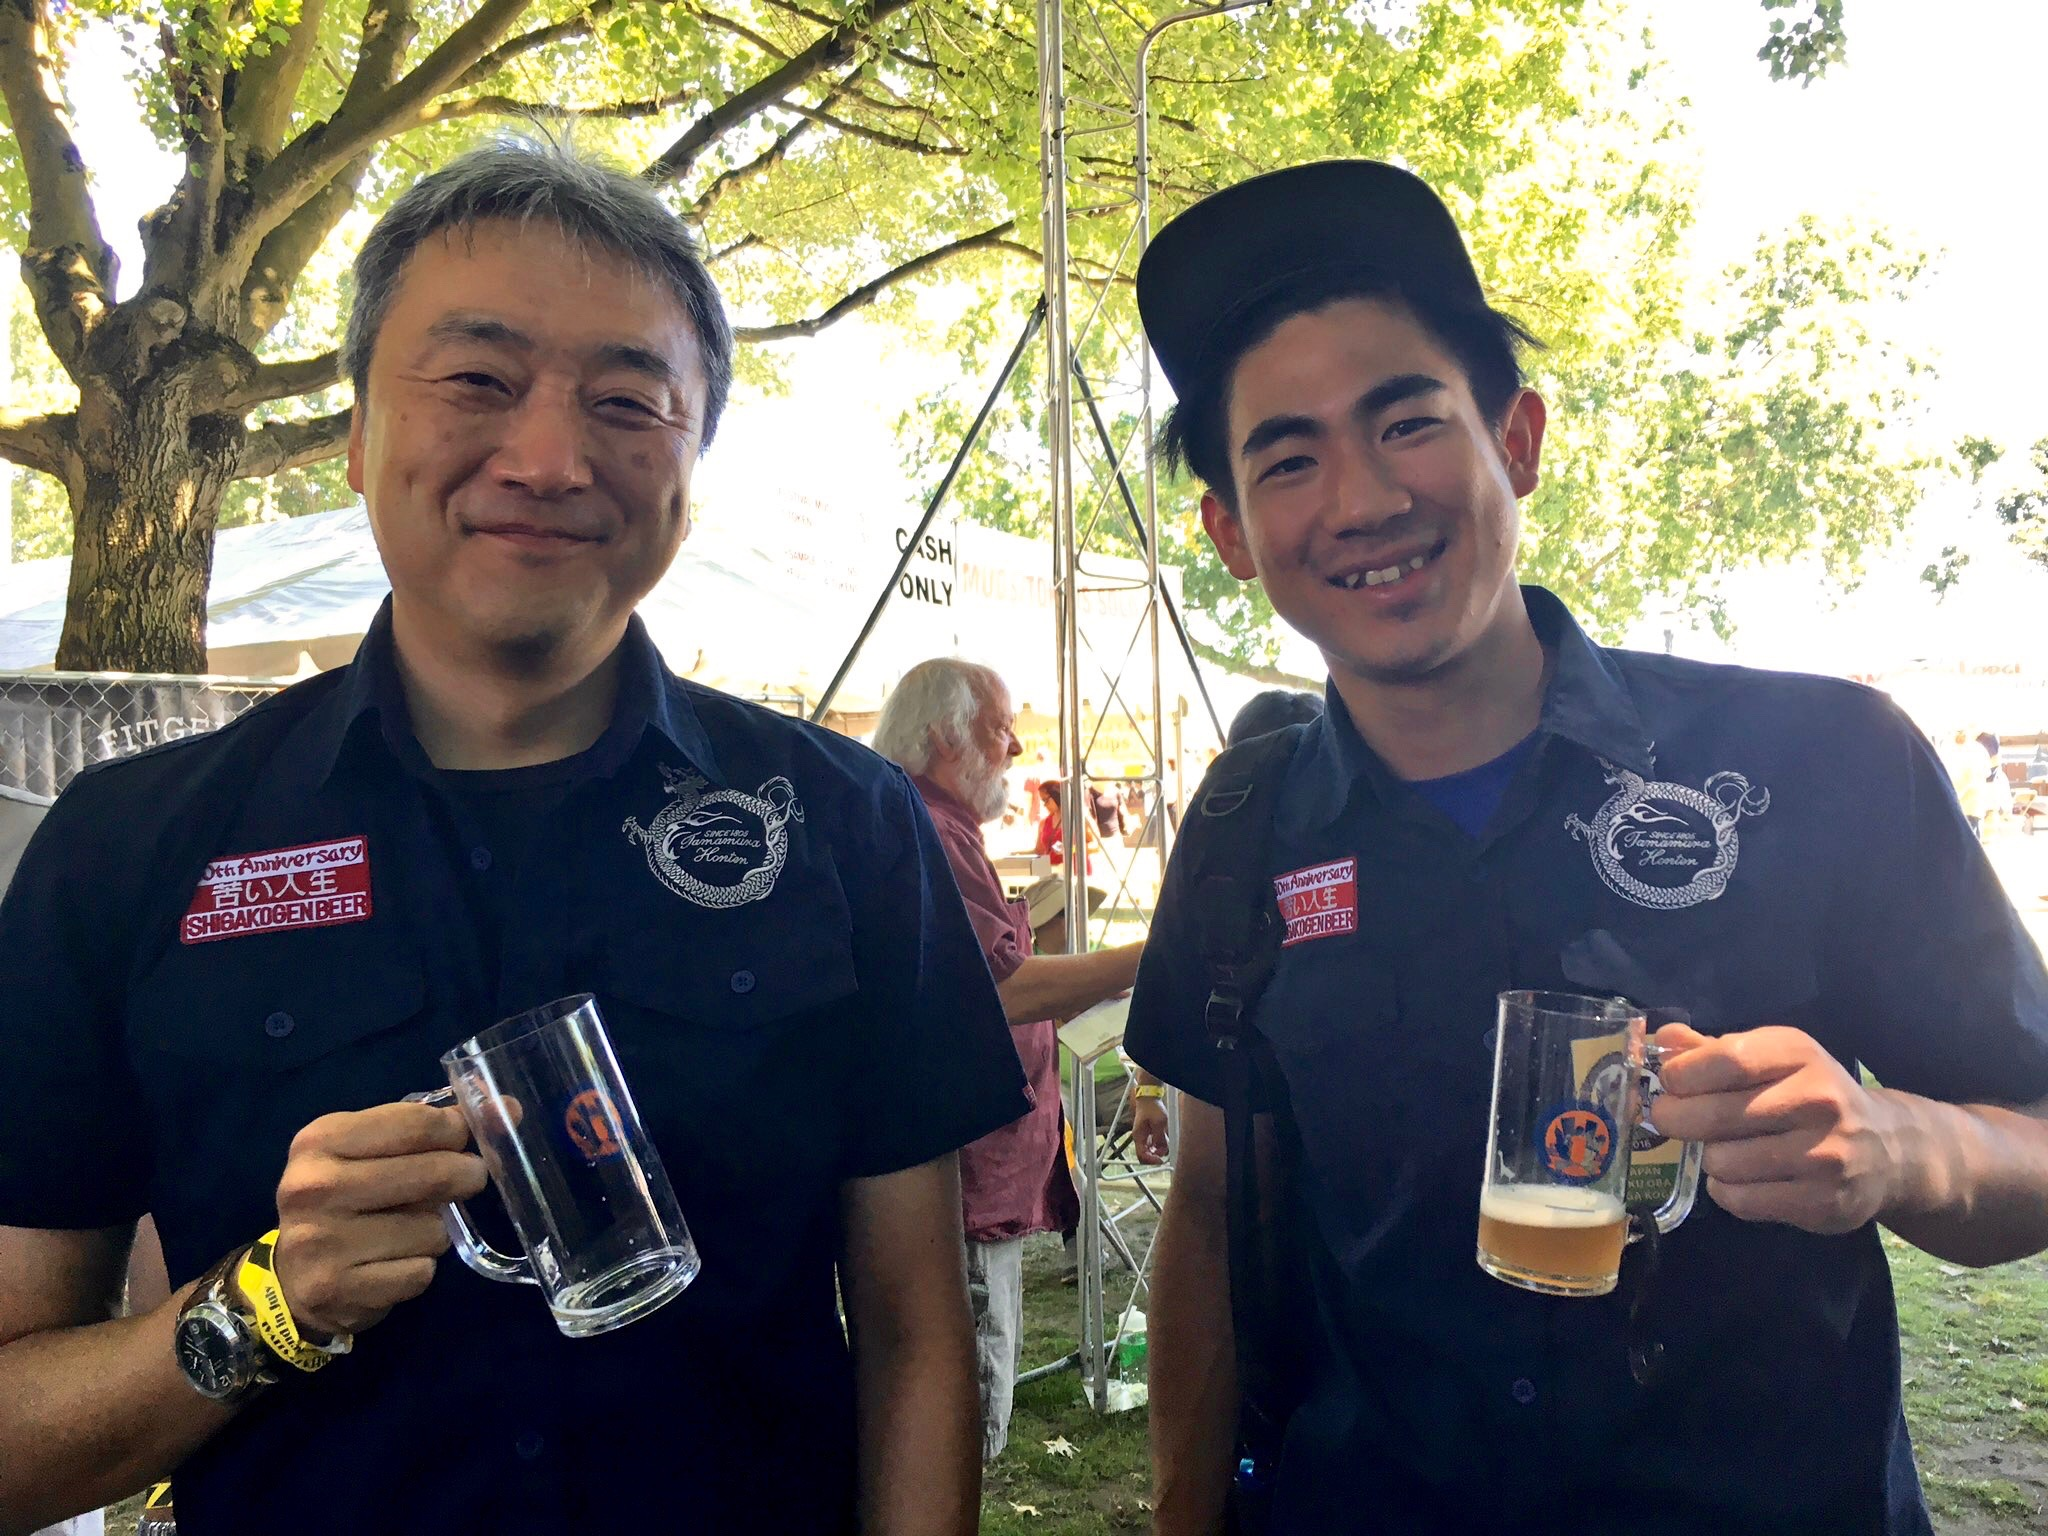 Riku Oba and Eigo Sato from Shiga Kogen from Japan in the International Beer Garden at the 2016 Oregon Brewers Festival. (photo by Cat Stelzer)